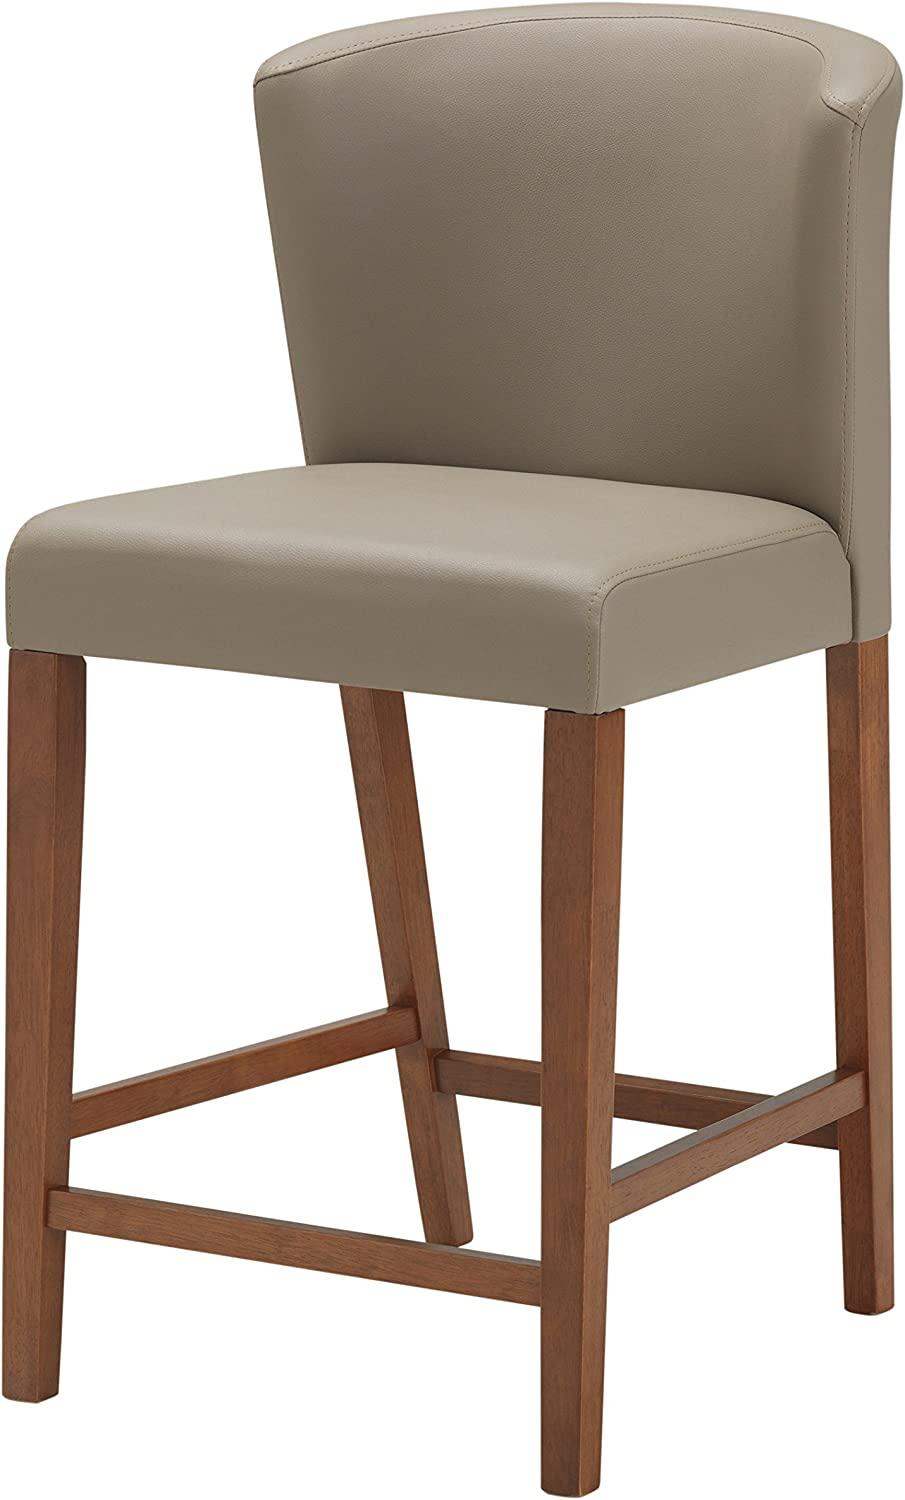 Baxton Studio Olivia Mid-Century Modern Scandinavian Style Dark Walnut Wood with Grey Faux Leather Pub Stool Set of 2